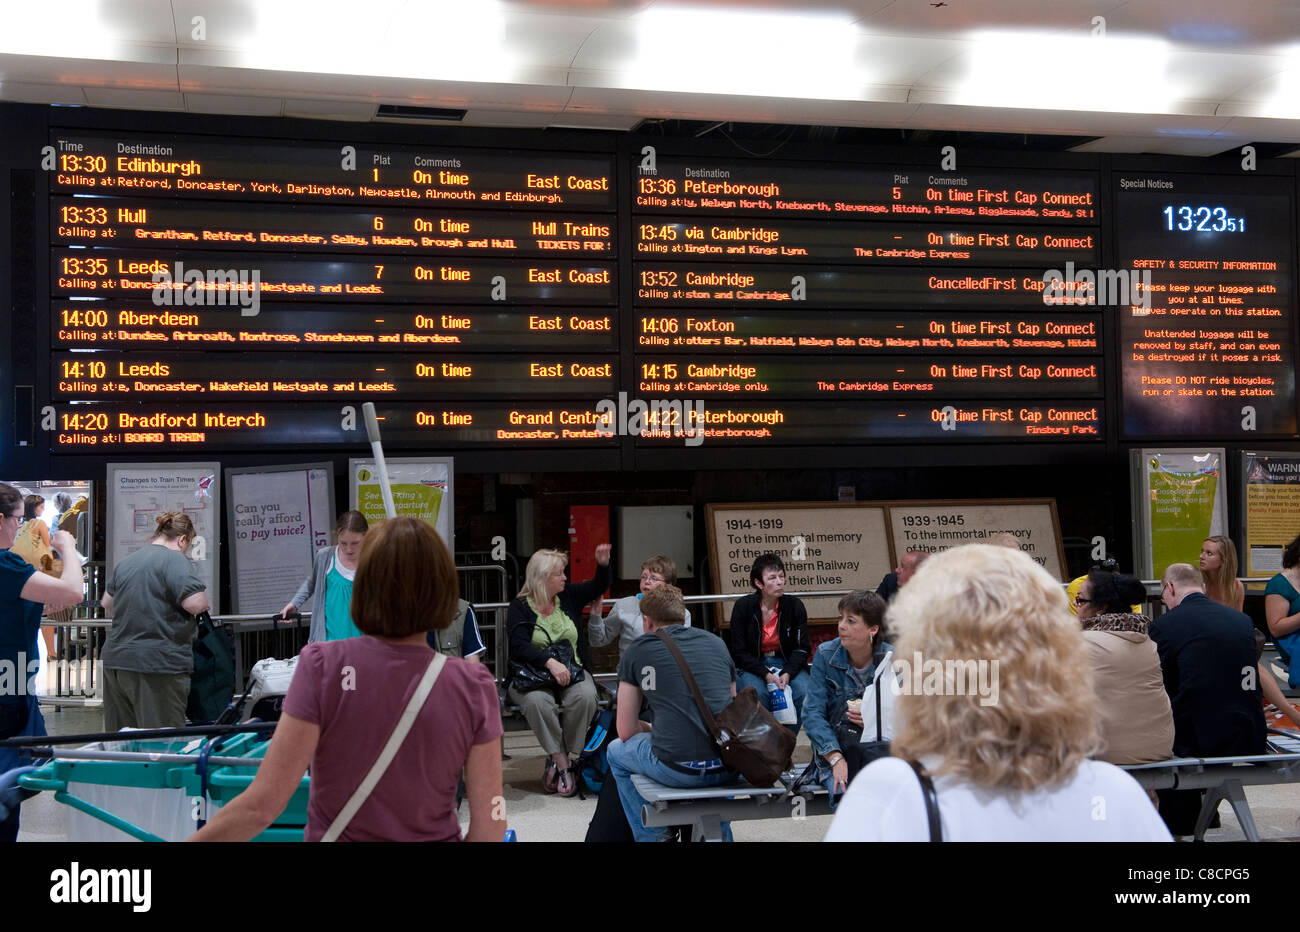 Passengers looking at a passenger information board at Kings Cross railway Station in London. - Stock Image